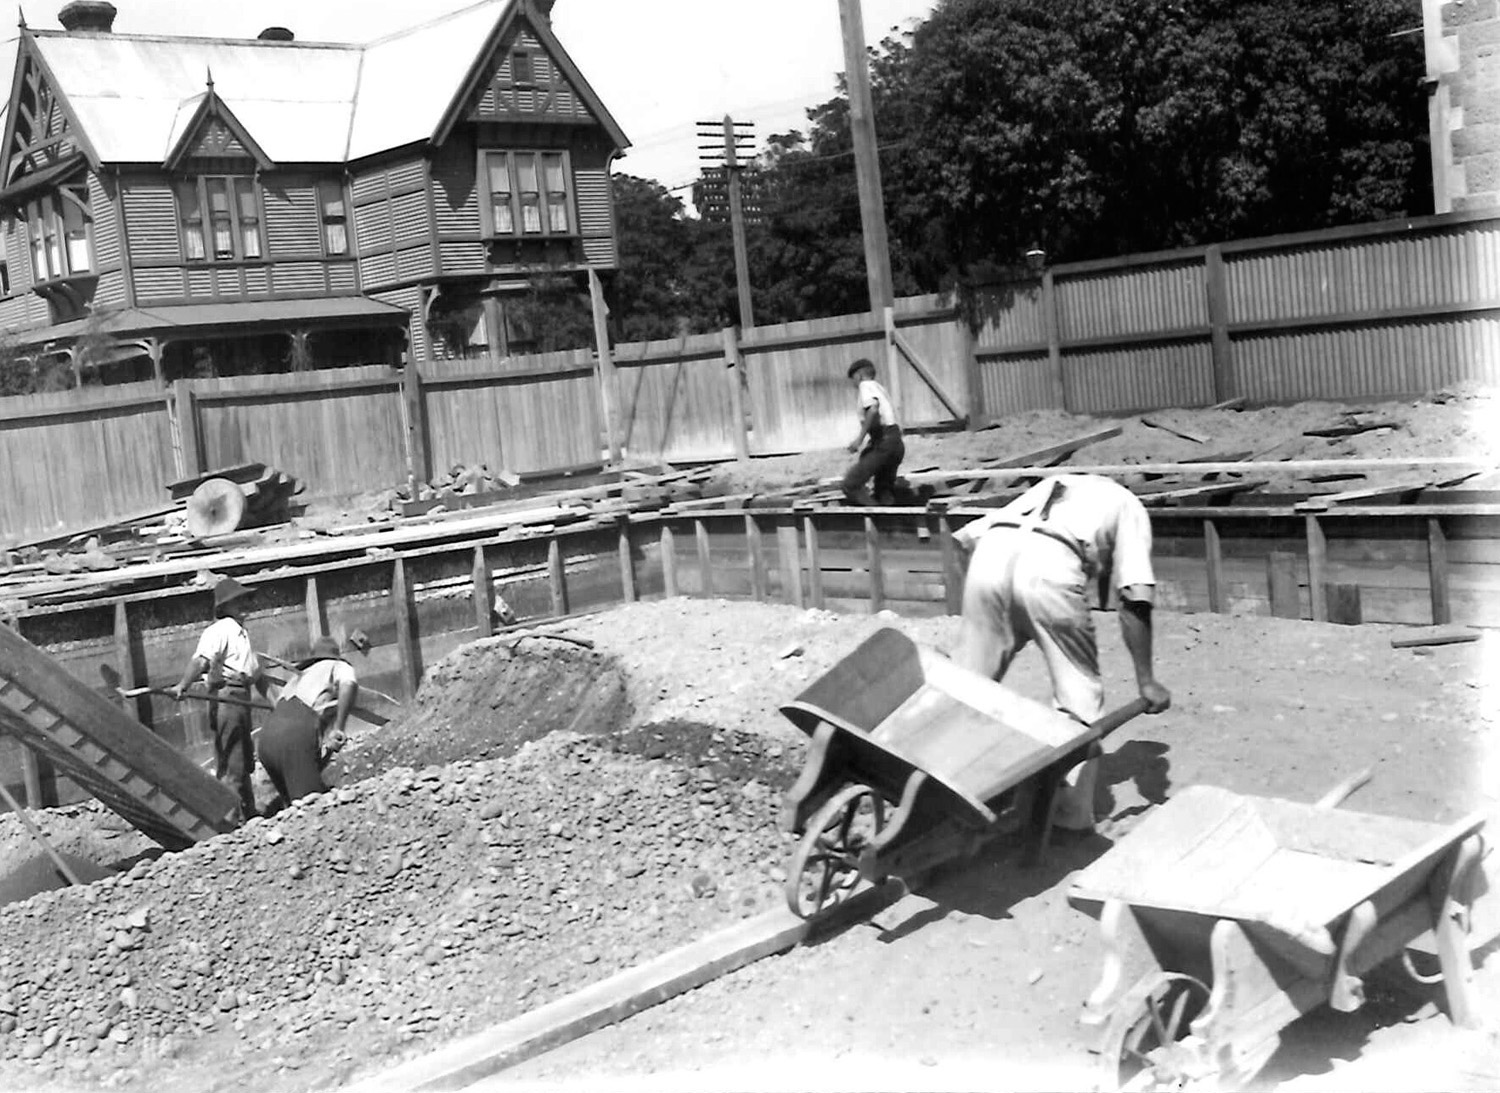 MB_1051_17088_DiggingFoundations - Imported from Library News system